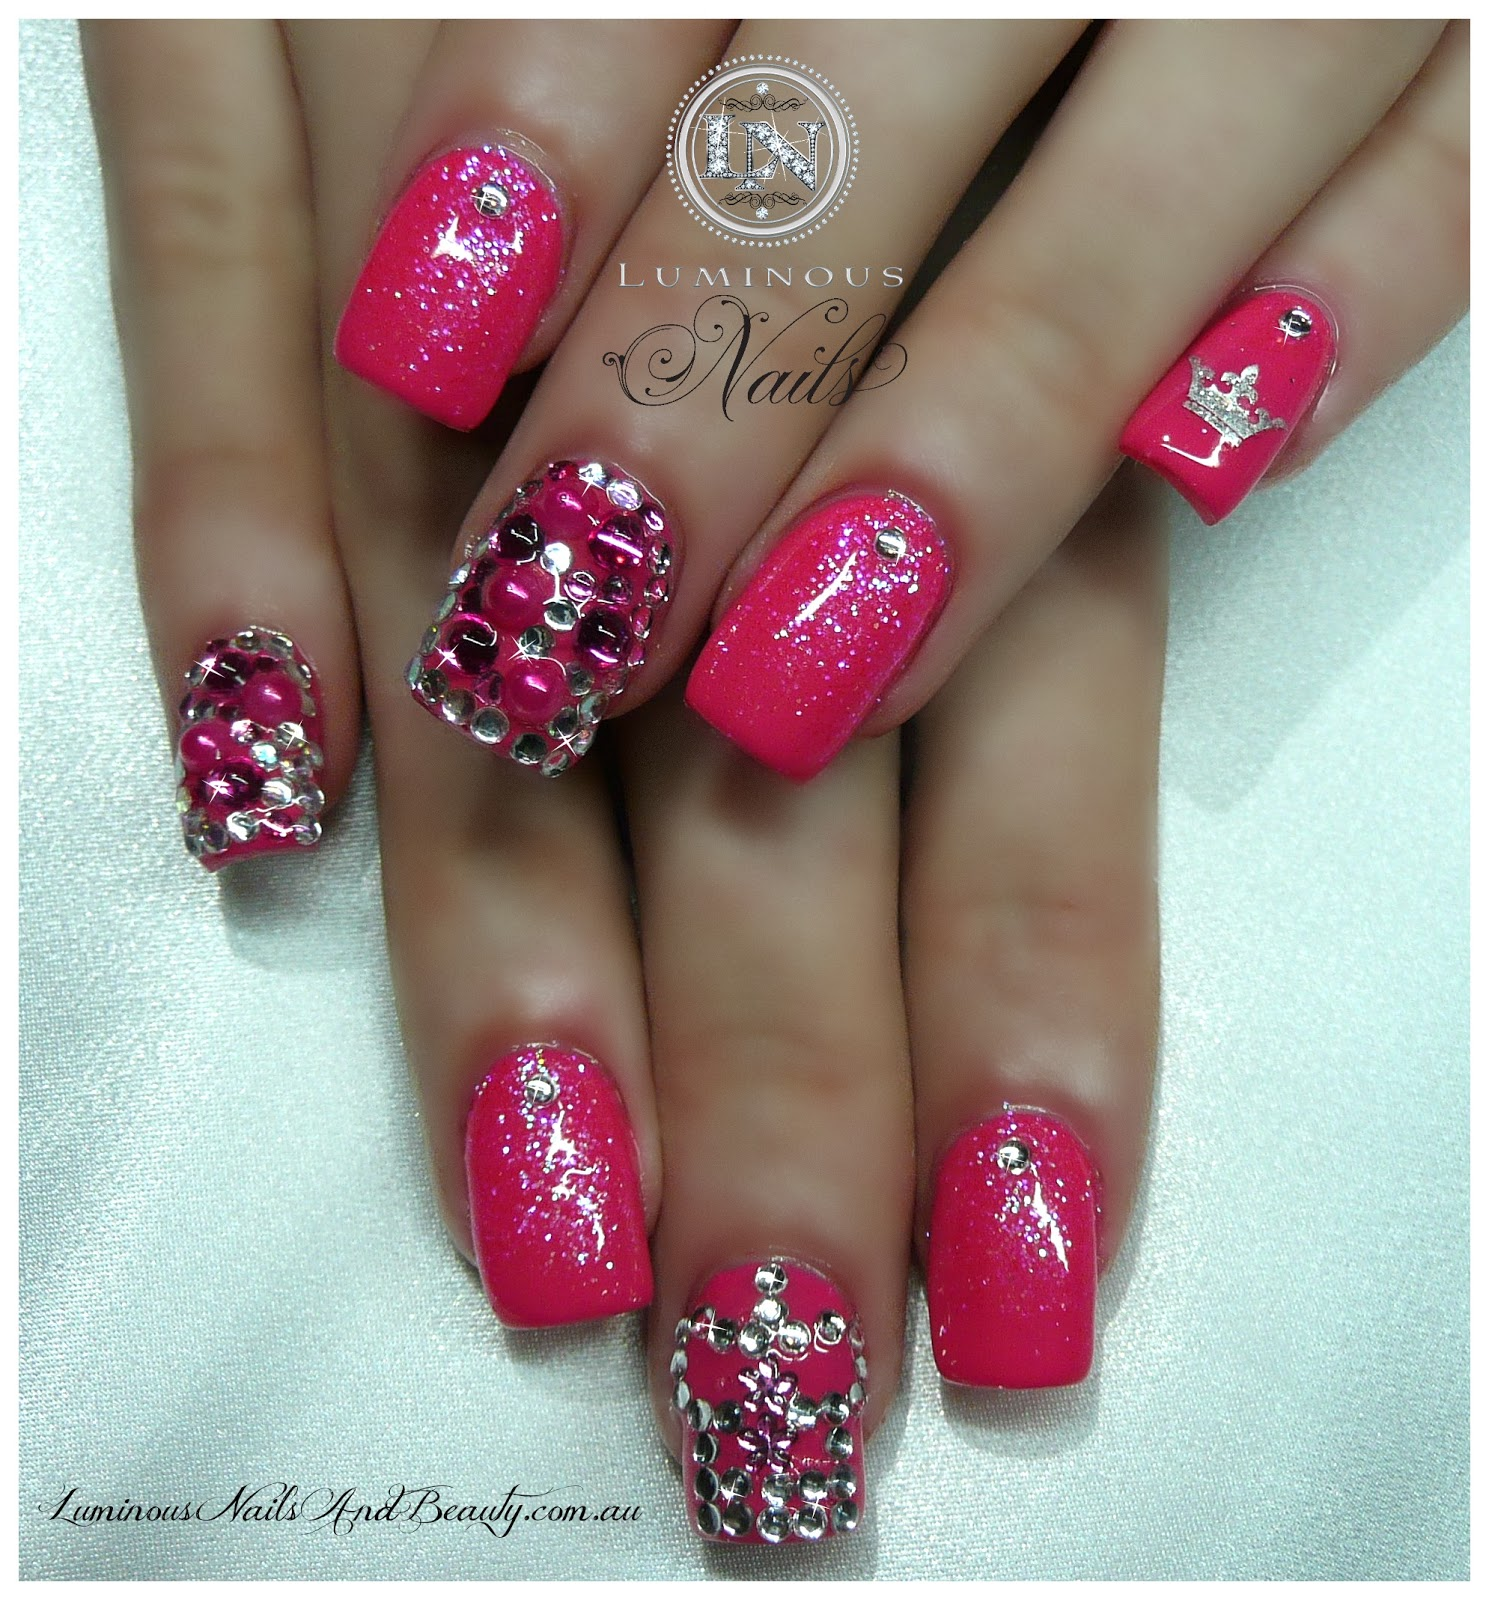 Luminous Nails: November 2012